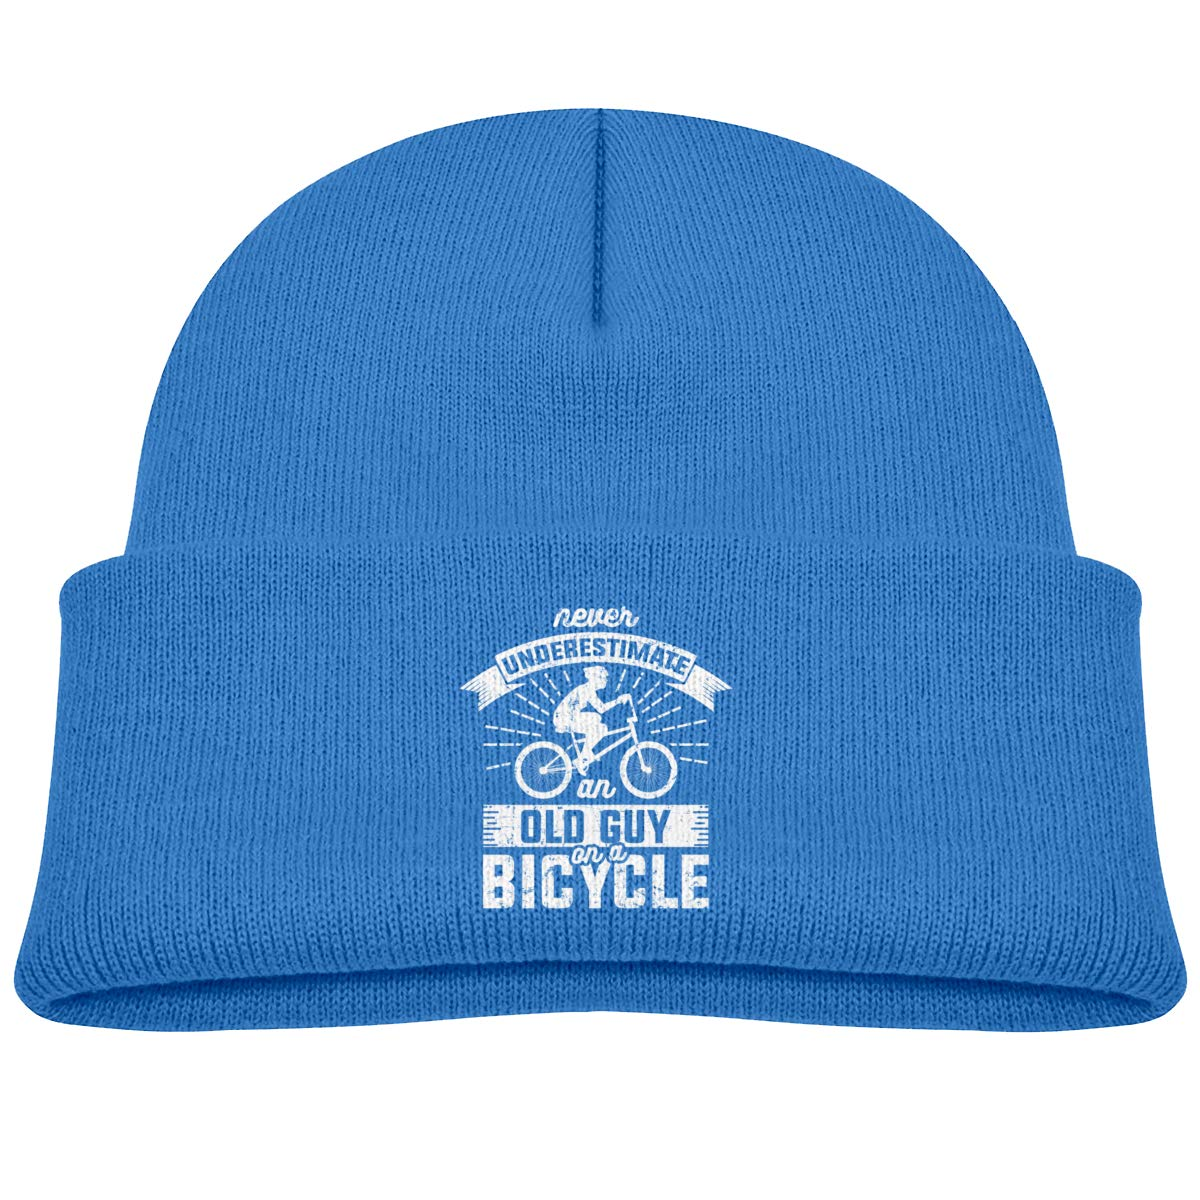 Never Underestimate an Old Guy On A Bicycle Beanie Hats Baby Girls Blue